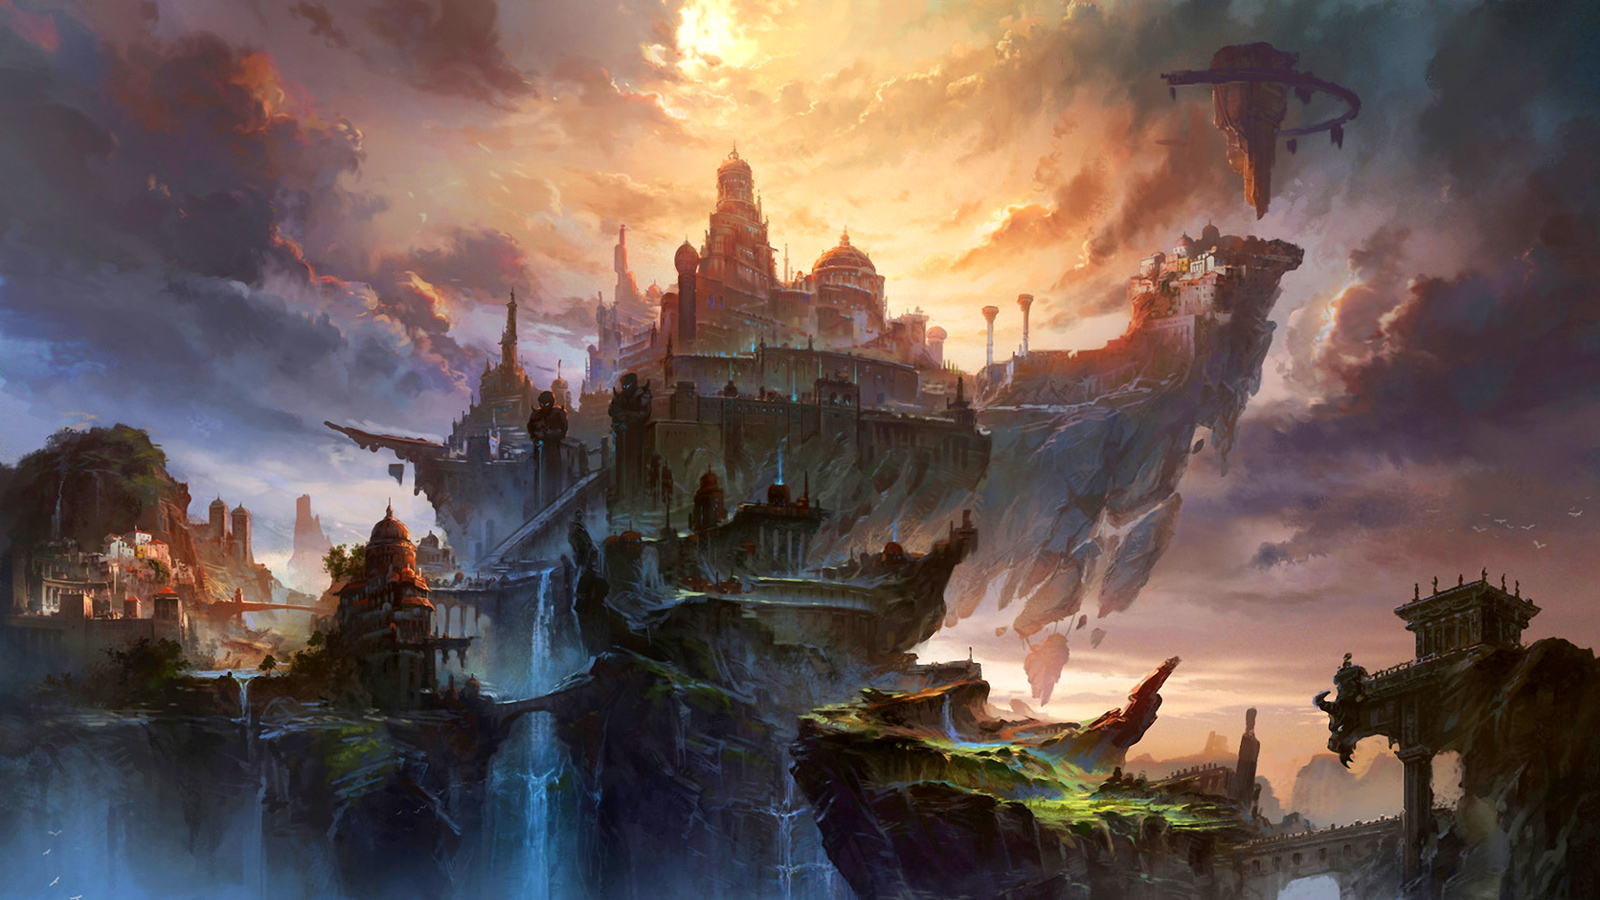 Water dragon wallpapers wallpaper cave - The City In The Clouds Wallpaper And Background 1600x900